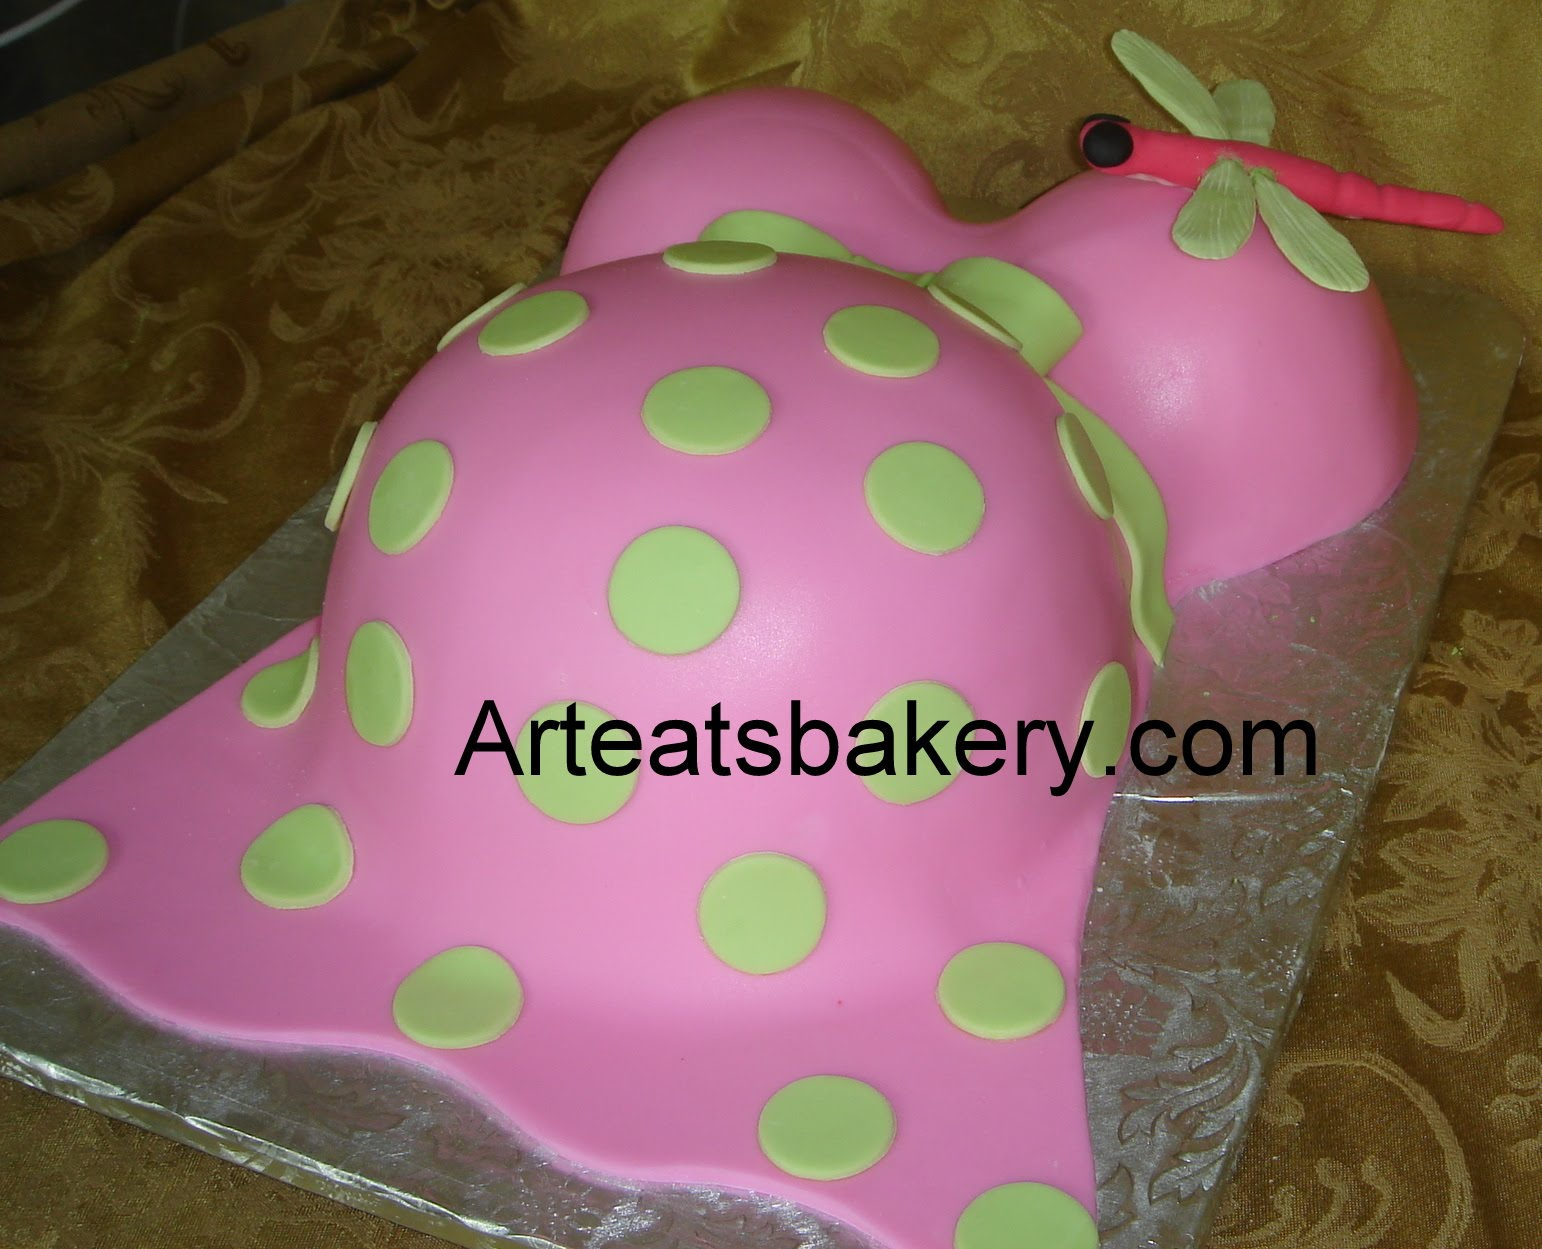 Maternity top in pink fondant with green polka dots and ribbon tied in ...